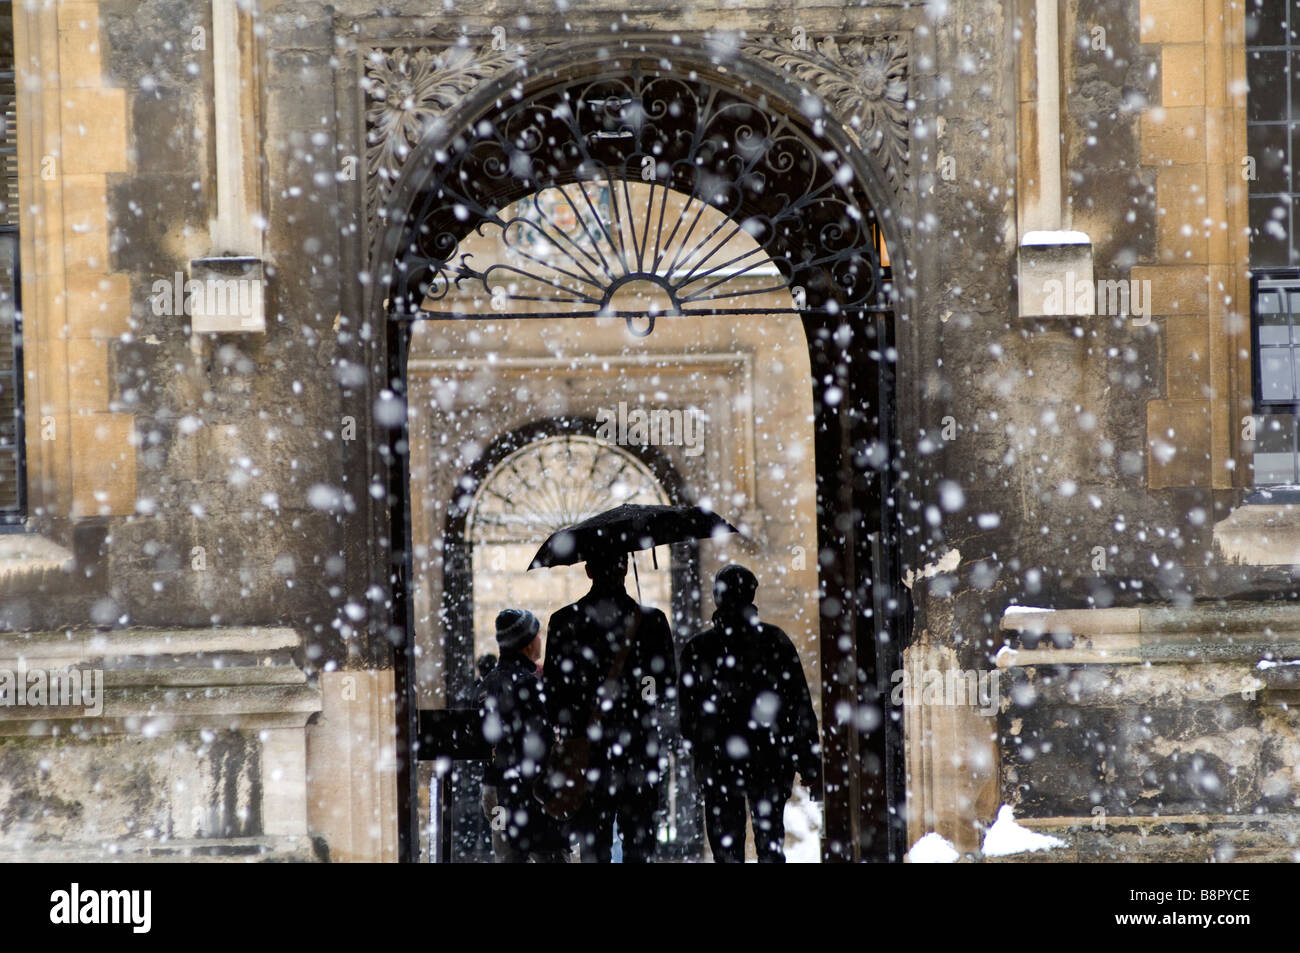 The Bodlean Library in a snow storm at Oxford University - Stock Image